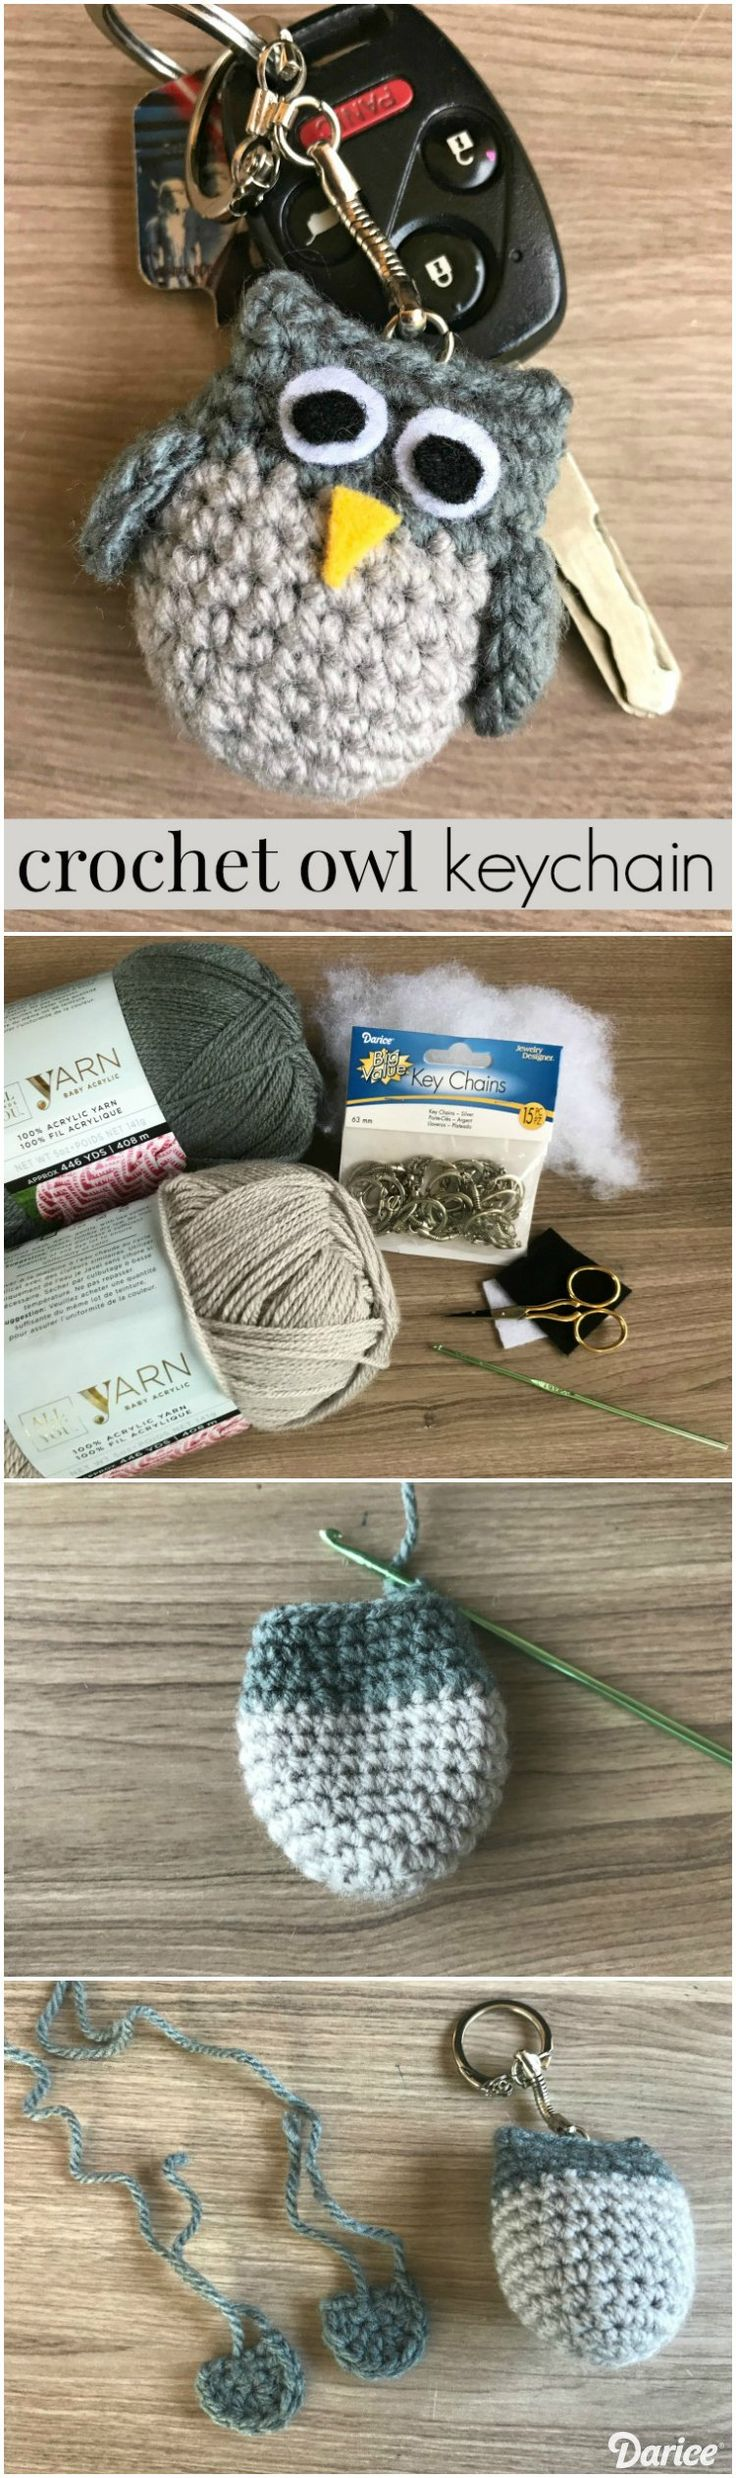 Get the free pattern for this adorable crochet owl keychain in today's blog post. Customize your owl with your favorite yarn colors!